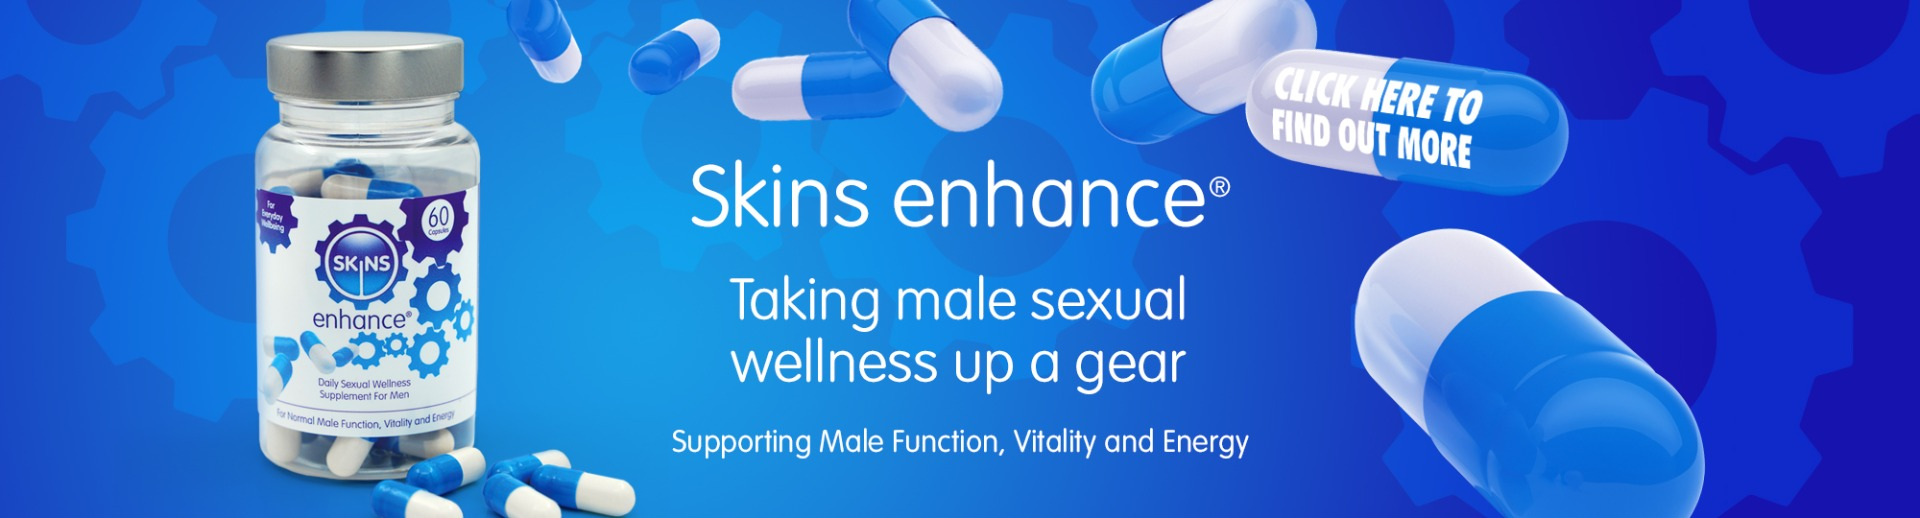 Skins Enhancements Pills| All Natural Male Sexual Wellness